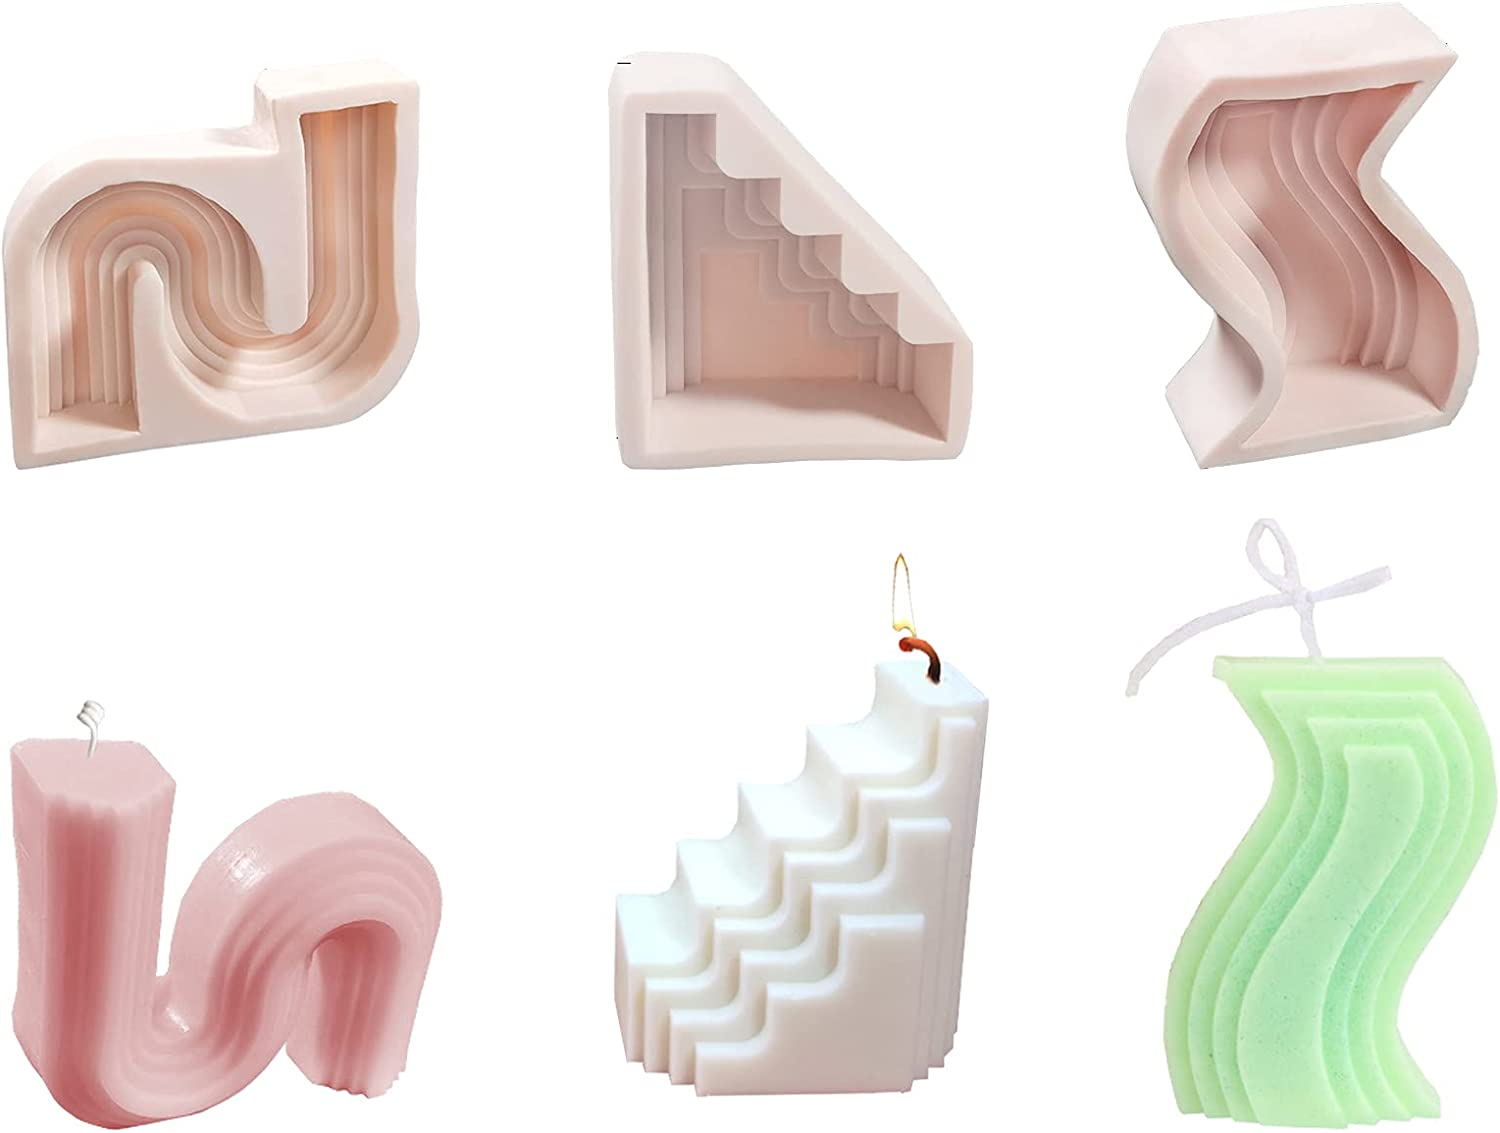 DIPNANG Branded goods 3 Pieces Candle Molds Shaped Silicone Geometric Special Discount mail order